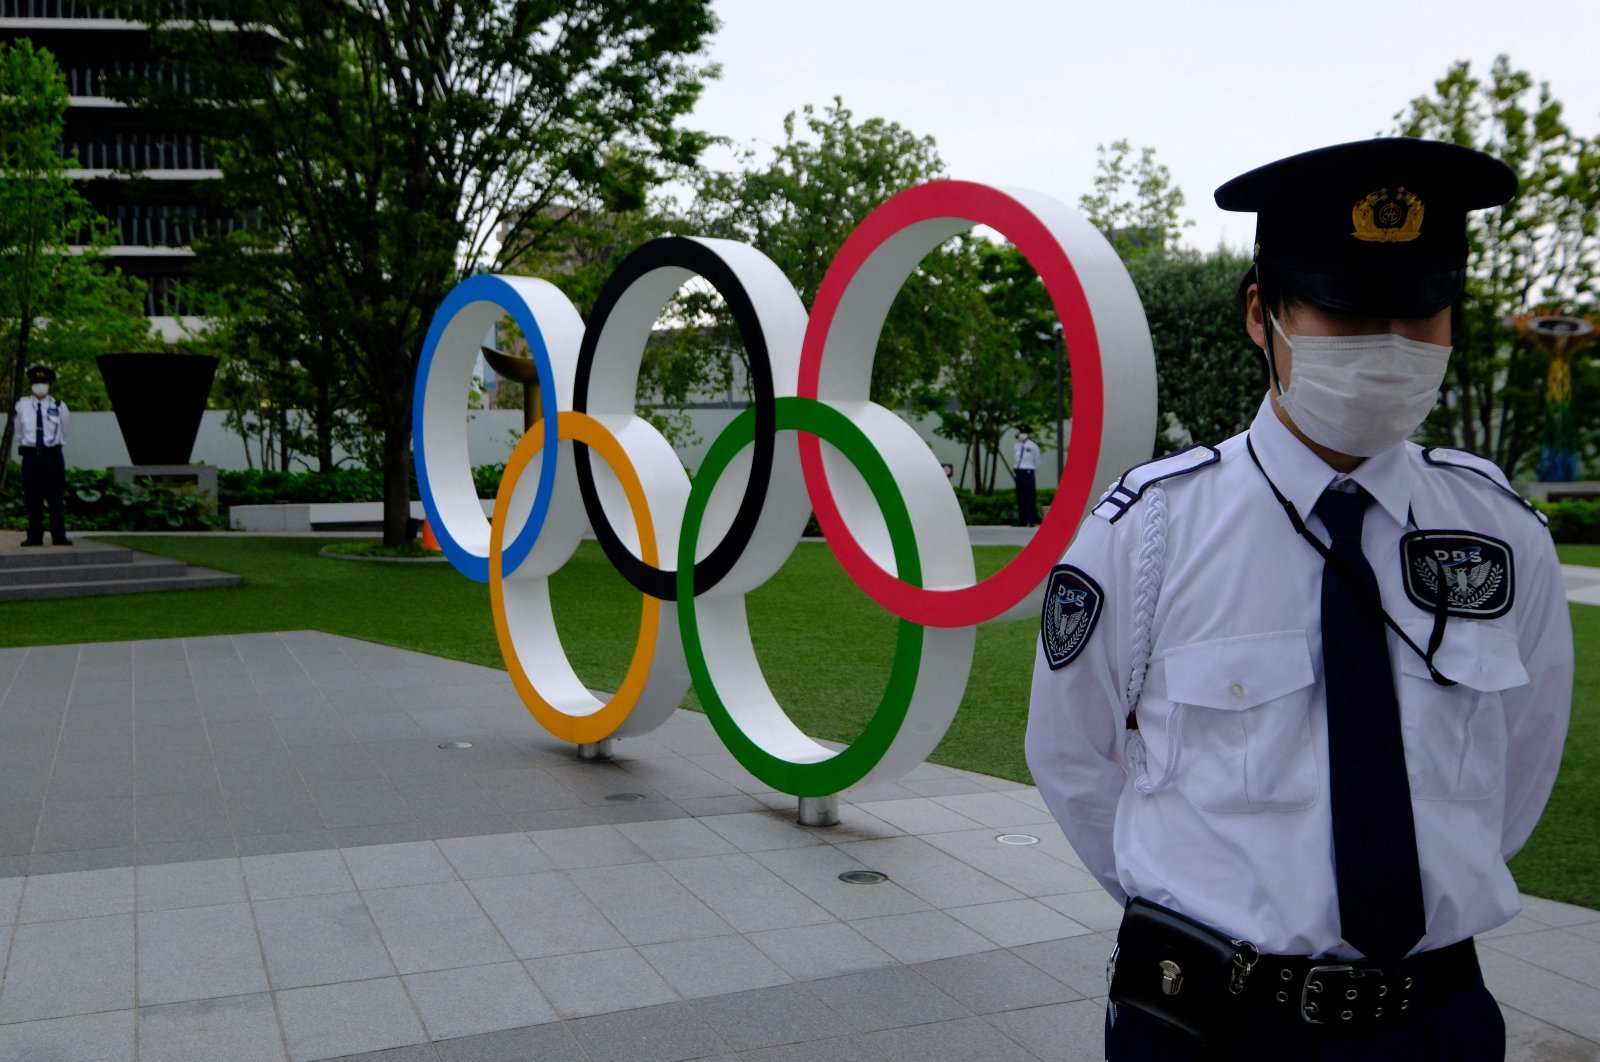 Security guards keep watch next to the Olympic Rings while people take part in a protest against the hosting of the 2020 Tokyo Olympic Games, in front of the headquarters building of the Japanese Olympic Committee in Tokyo, Japan, May 18, 2021. (AFP Photo)